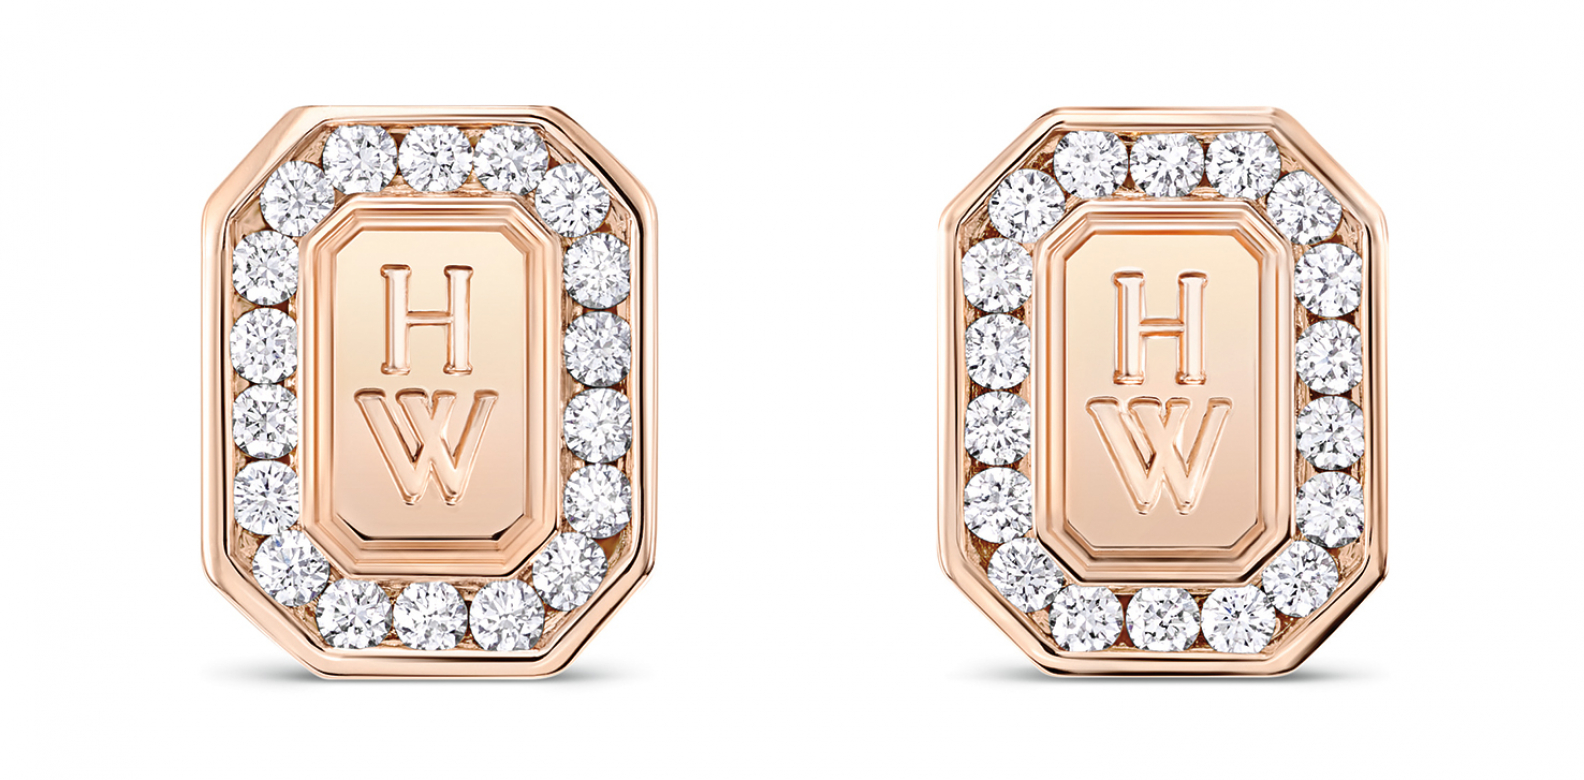 HW Logo by Harry Winston rose gold diamond earrings